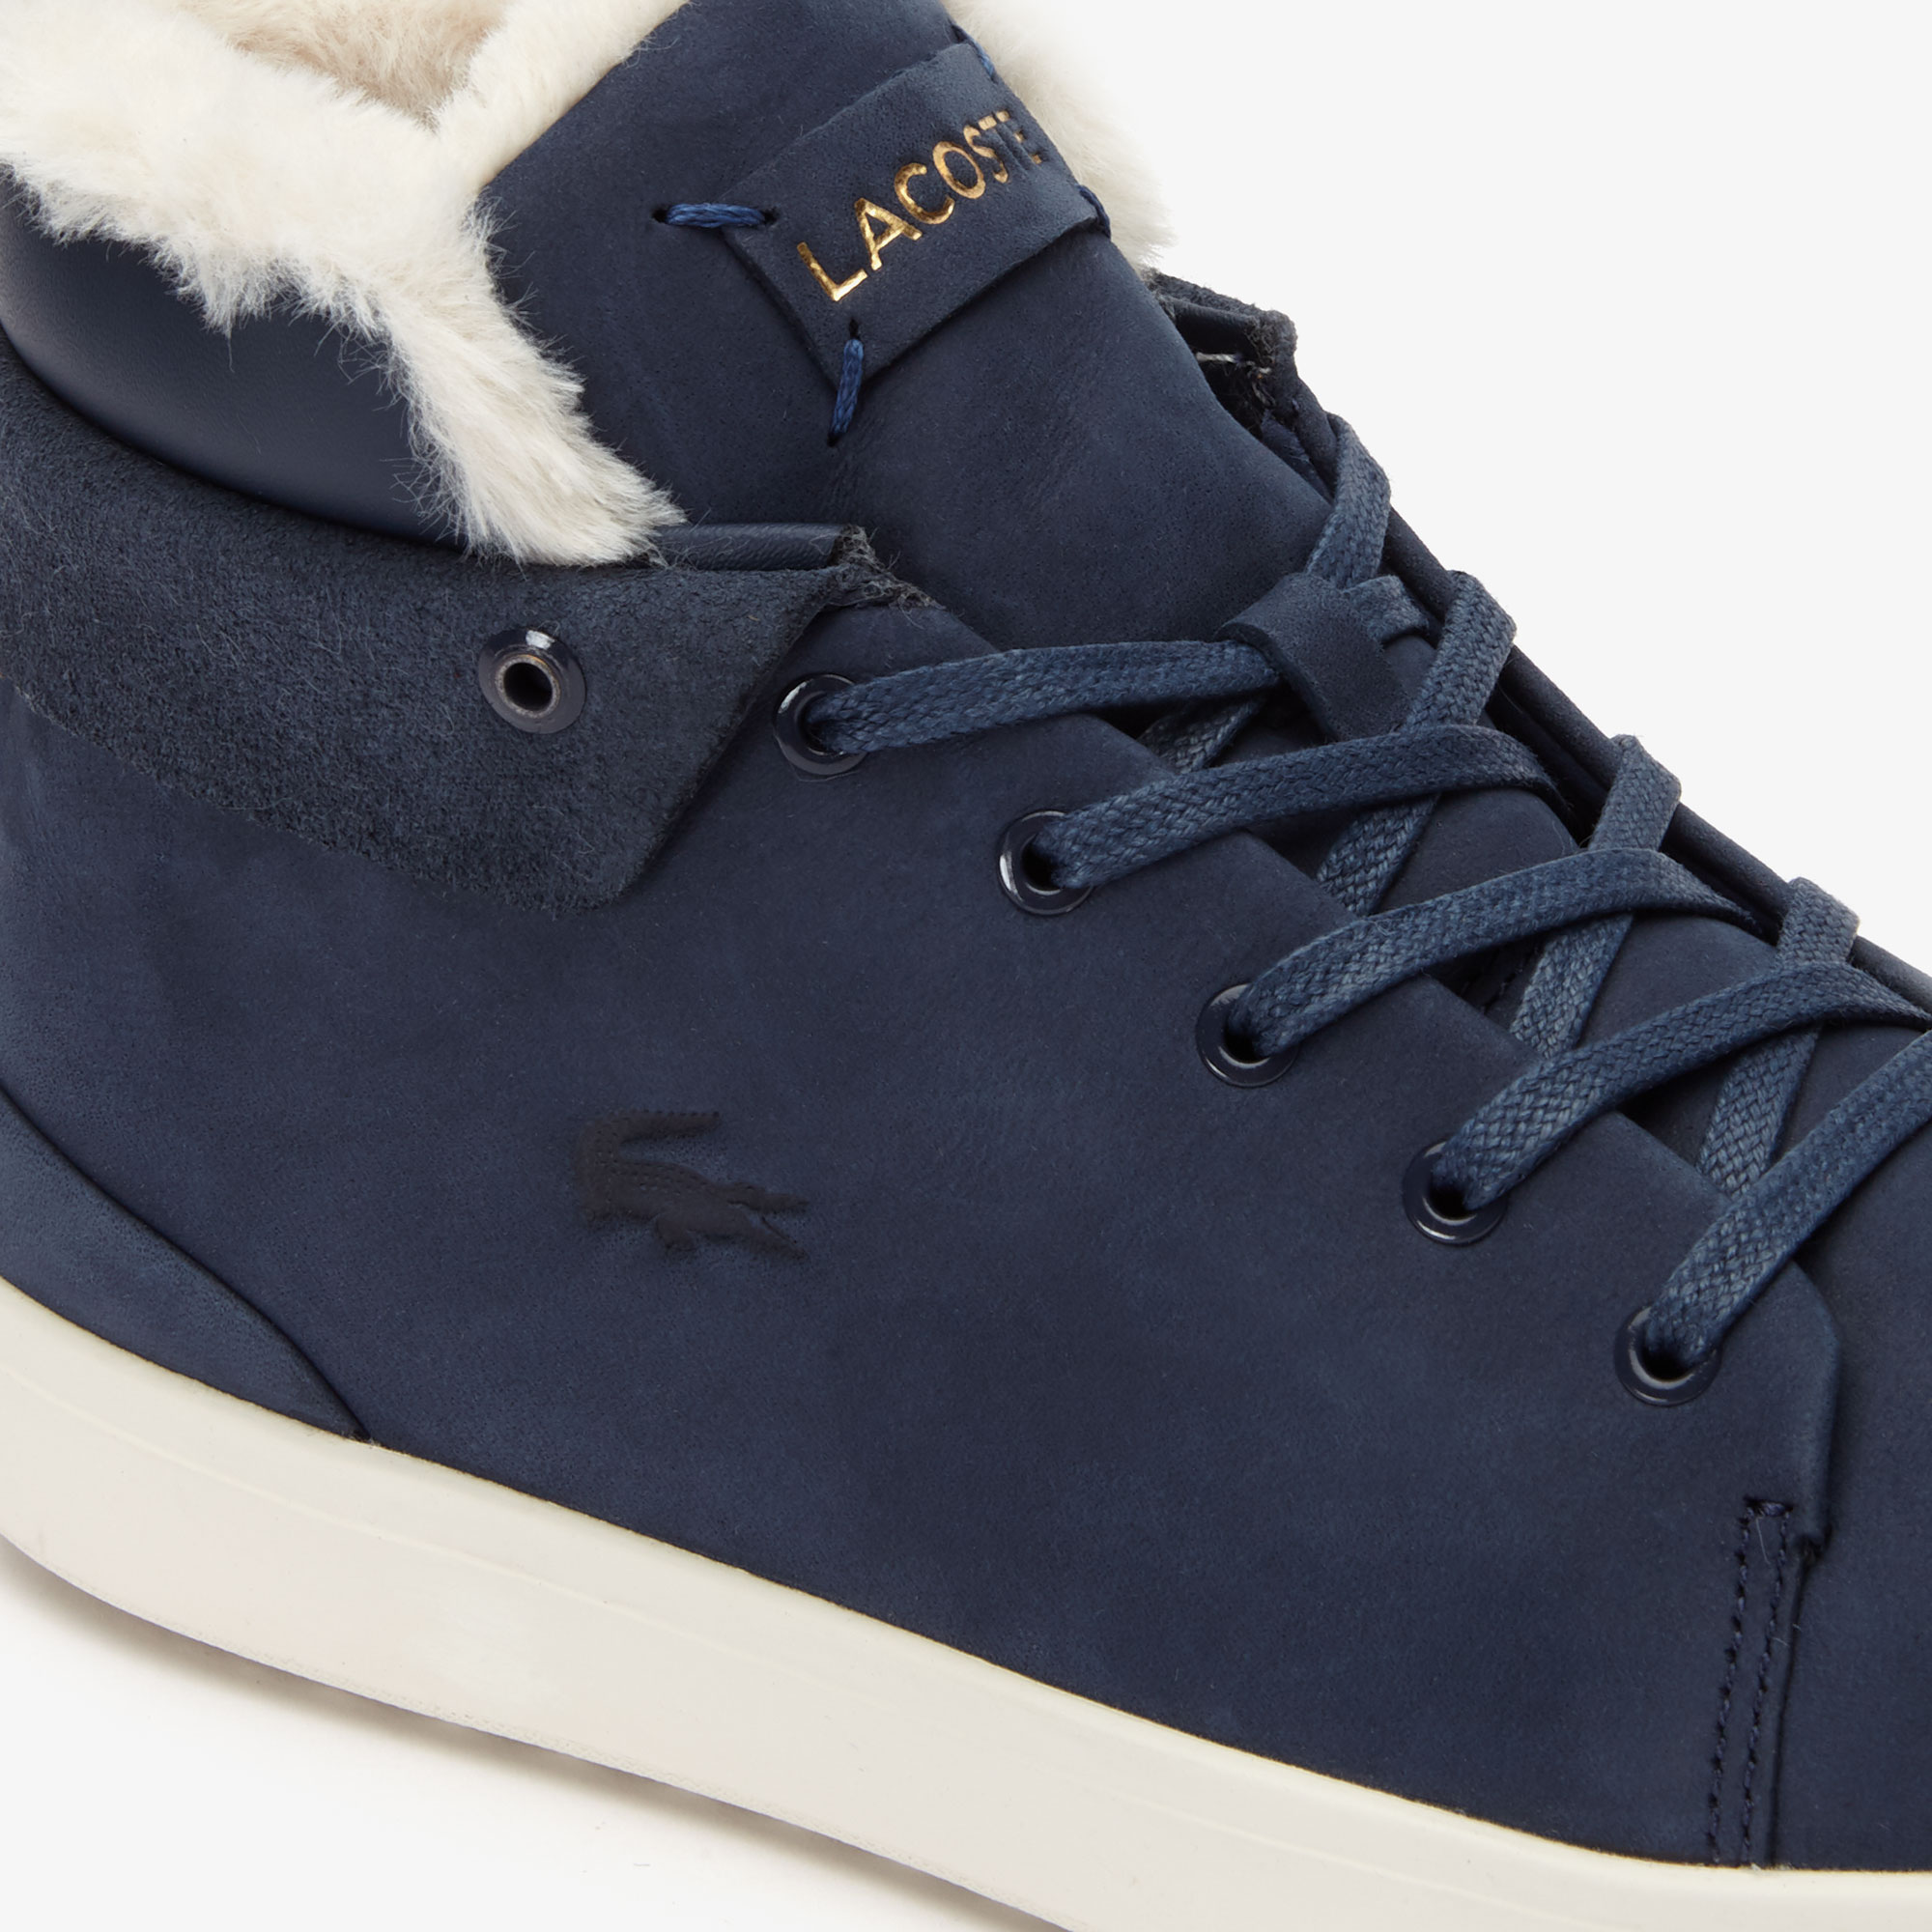 ЧЕРЕВИКИ LACOSTE EXPLORATEUR THERMO 419 1 CFA